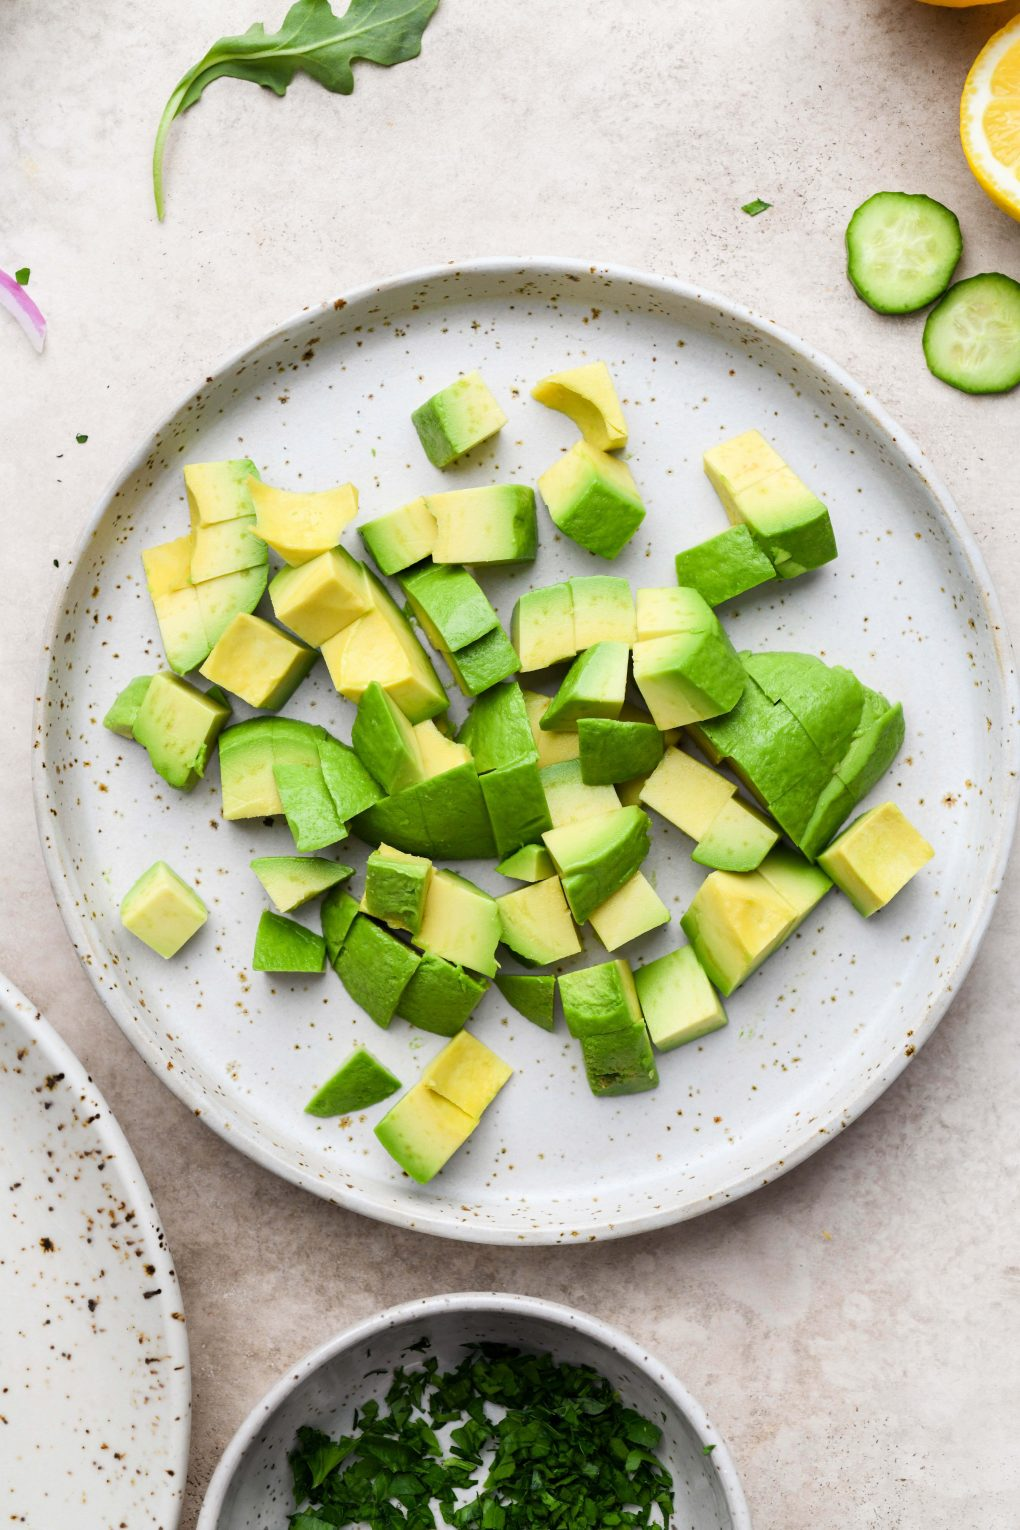 A medium sized speckled plate filled with chopped avocado. On a light beige background.